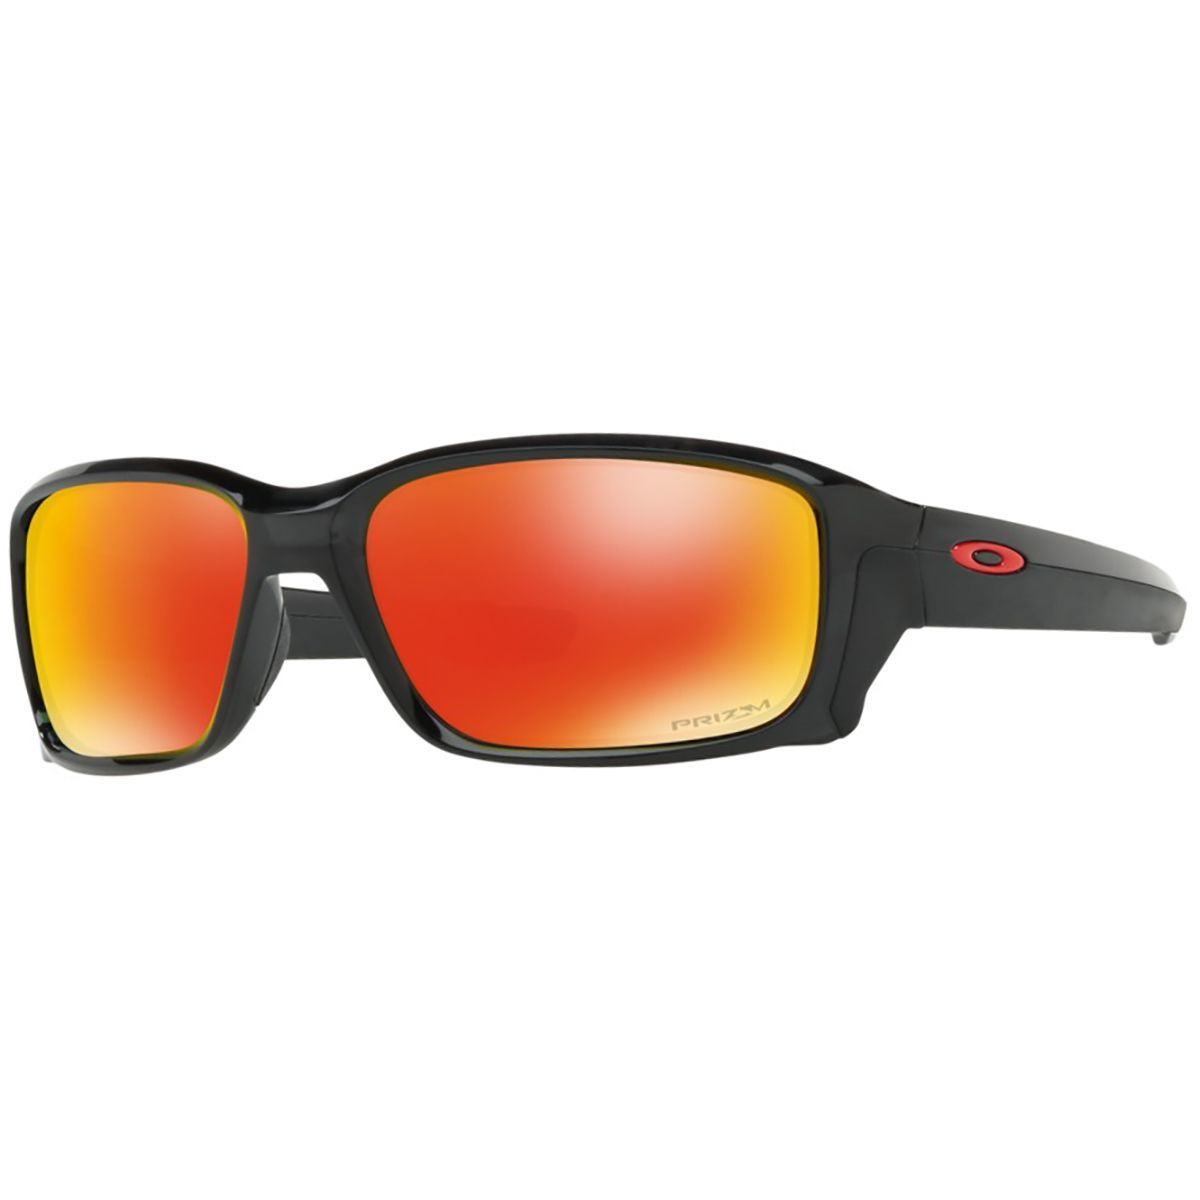 Oakley Straightlink Prizm Sunglasses - Men's